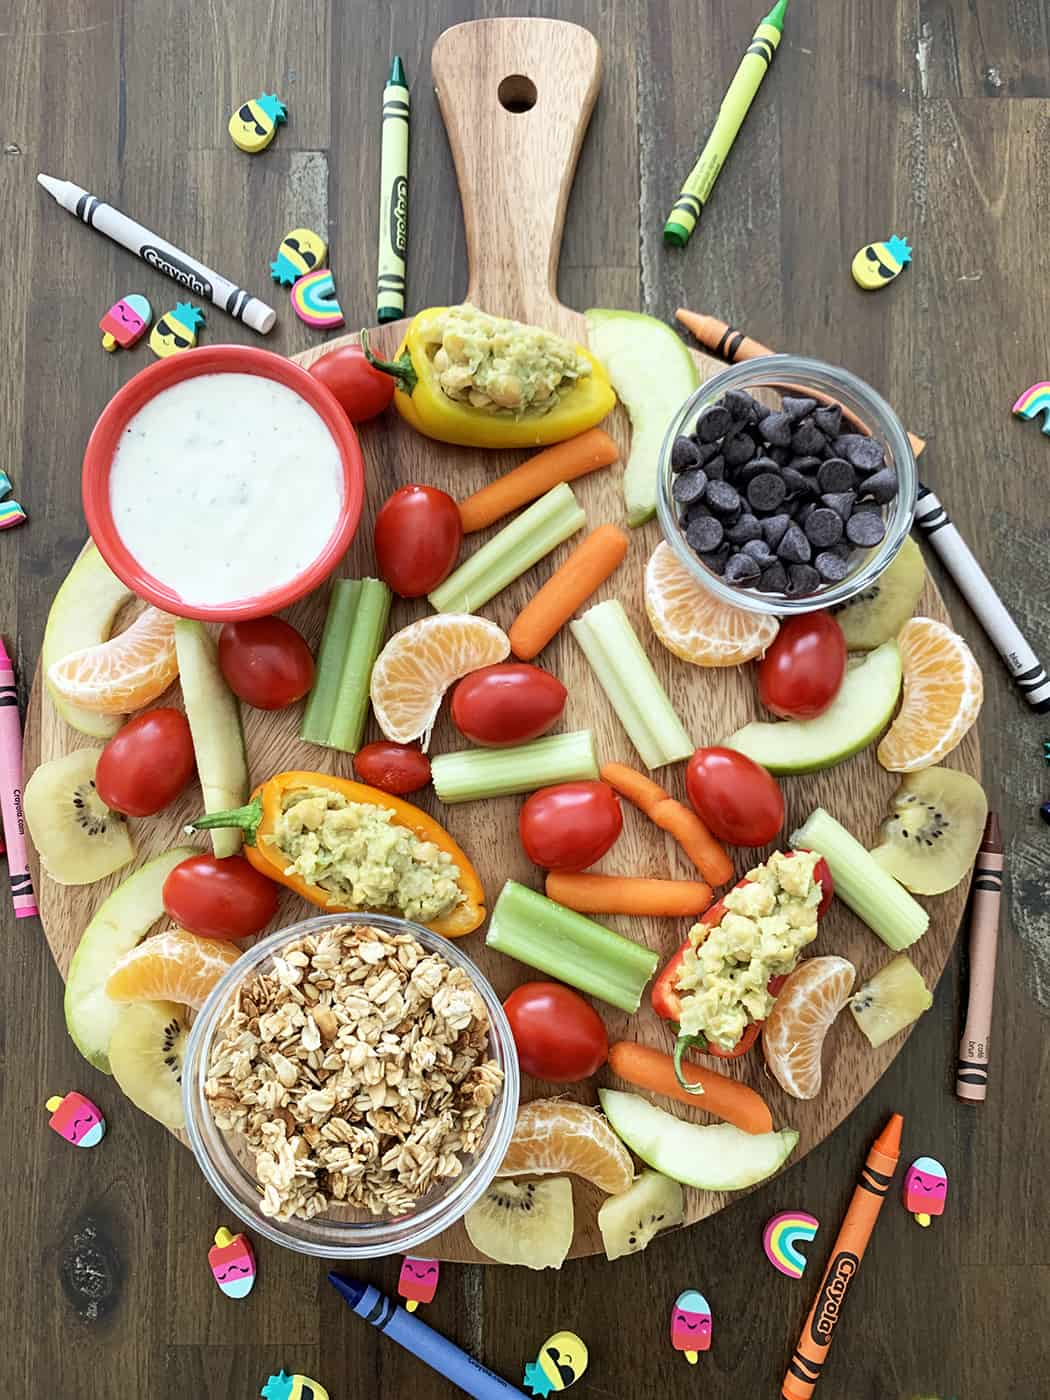 Snack board filled with healthy items